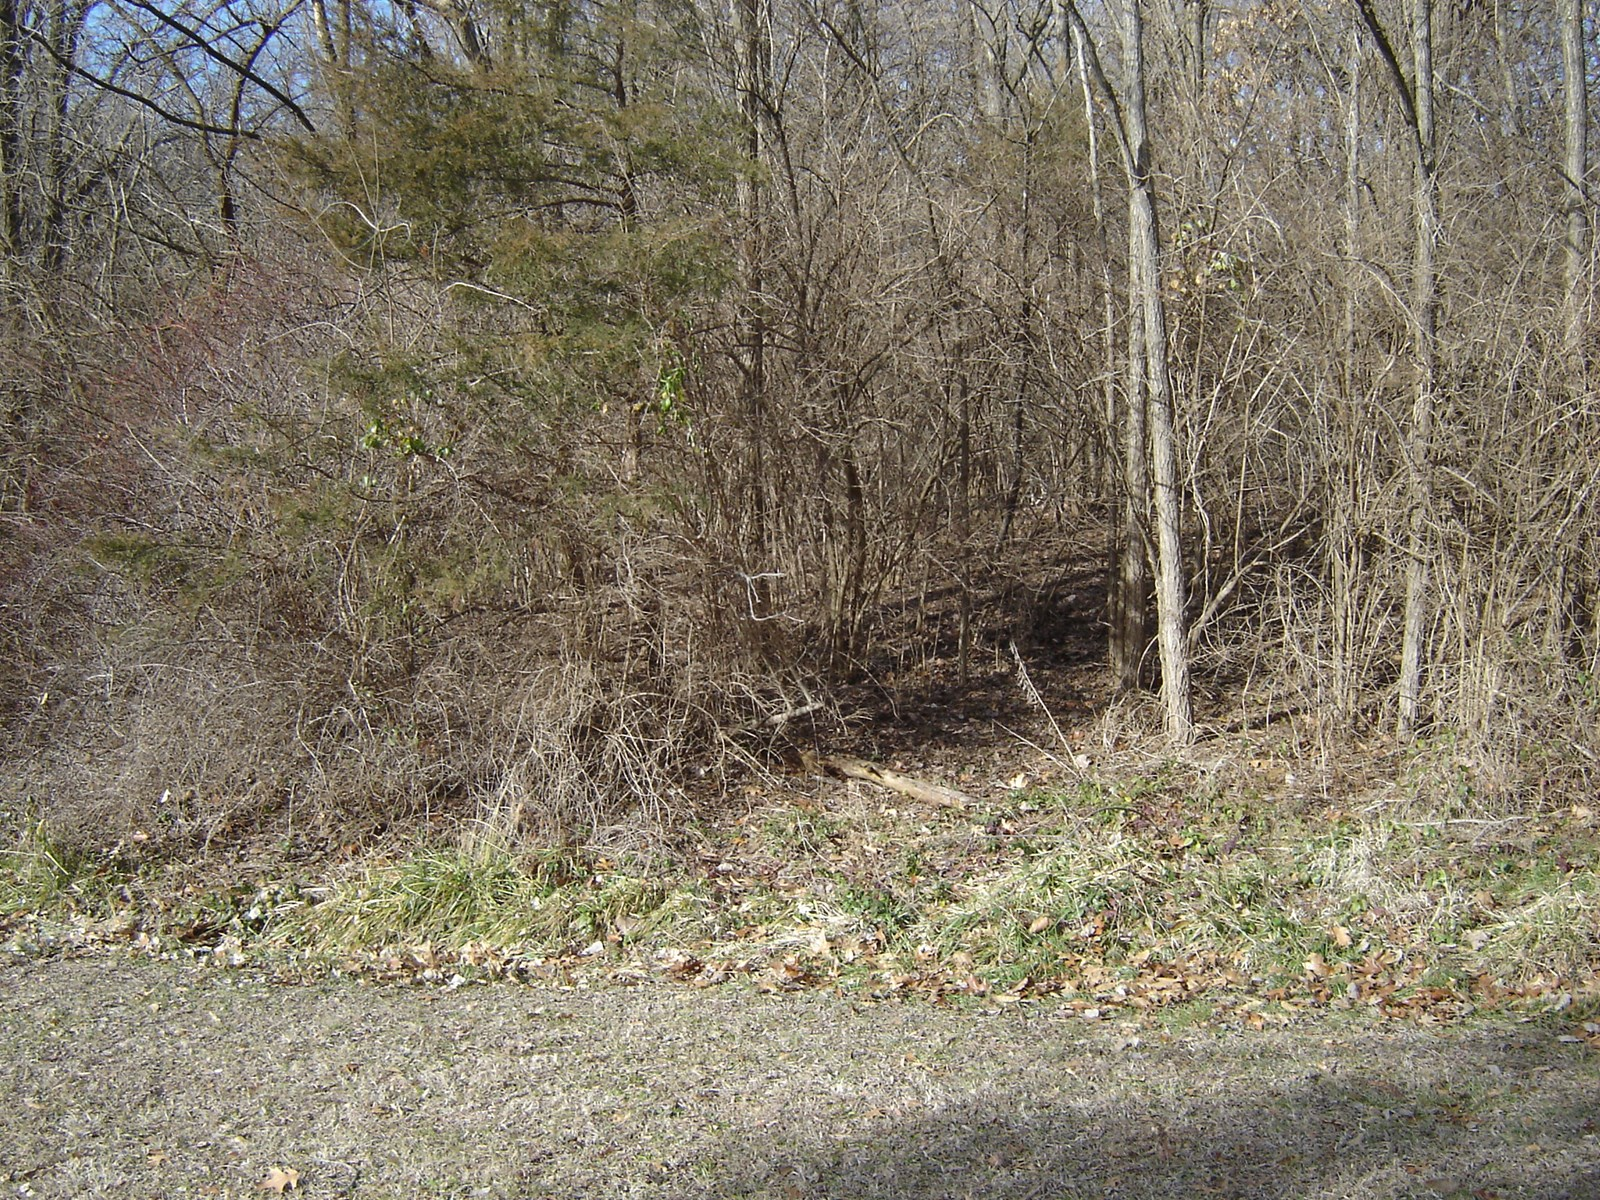 1+ acre wooded lot in secluded subdivision at edge of town